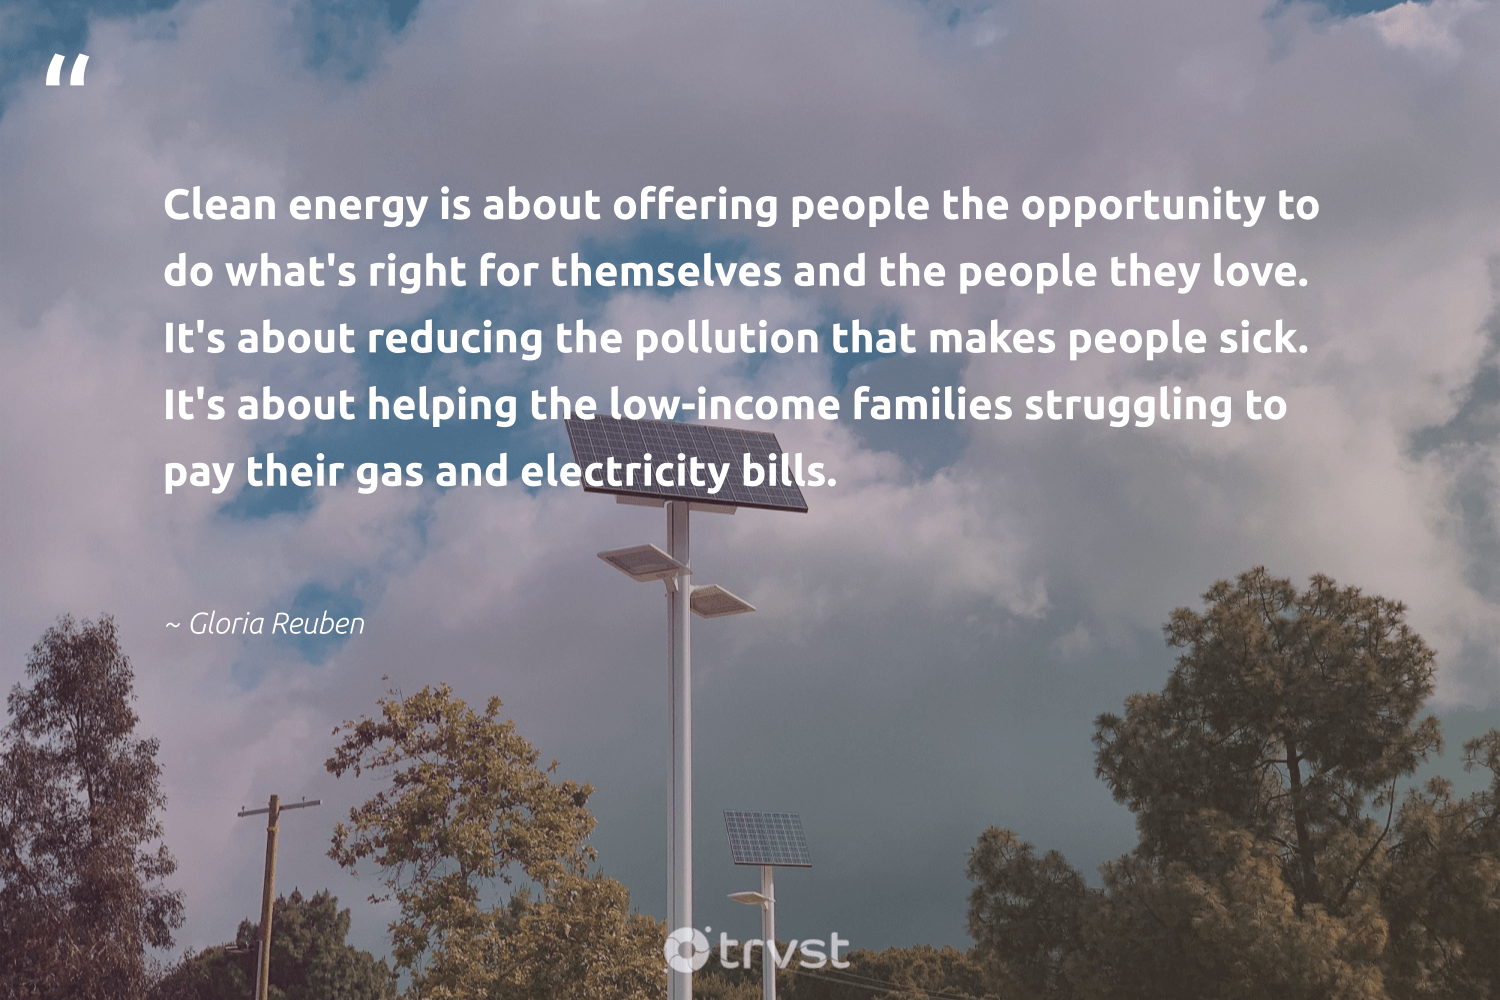 """""""Clean energy is about offering people the opportunity to do what's right for themselves and the people they love. It's about reducing the pollution that makes people sick. It's about helping the low-income families struggling to pay their gas and electricity bills.""""  - Gloria Reuben #trvst #quotes #renewableenergy #love #energy #cleanenergy #gas #pollution #families #lowcarbon #sustainable #parisagreement"""